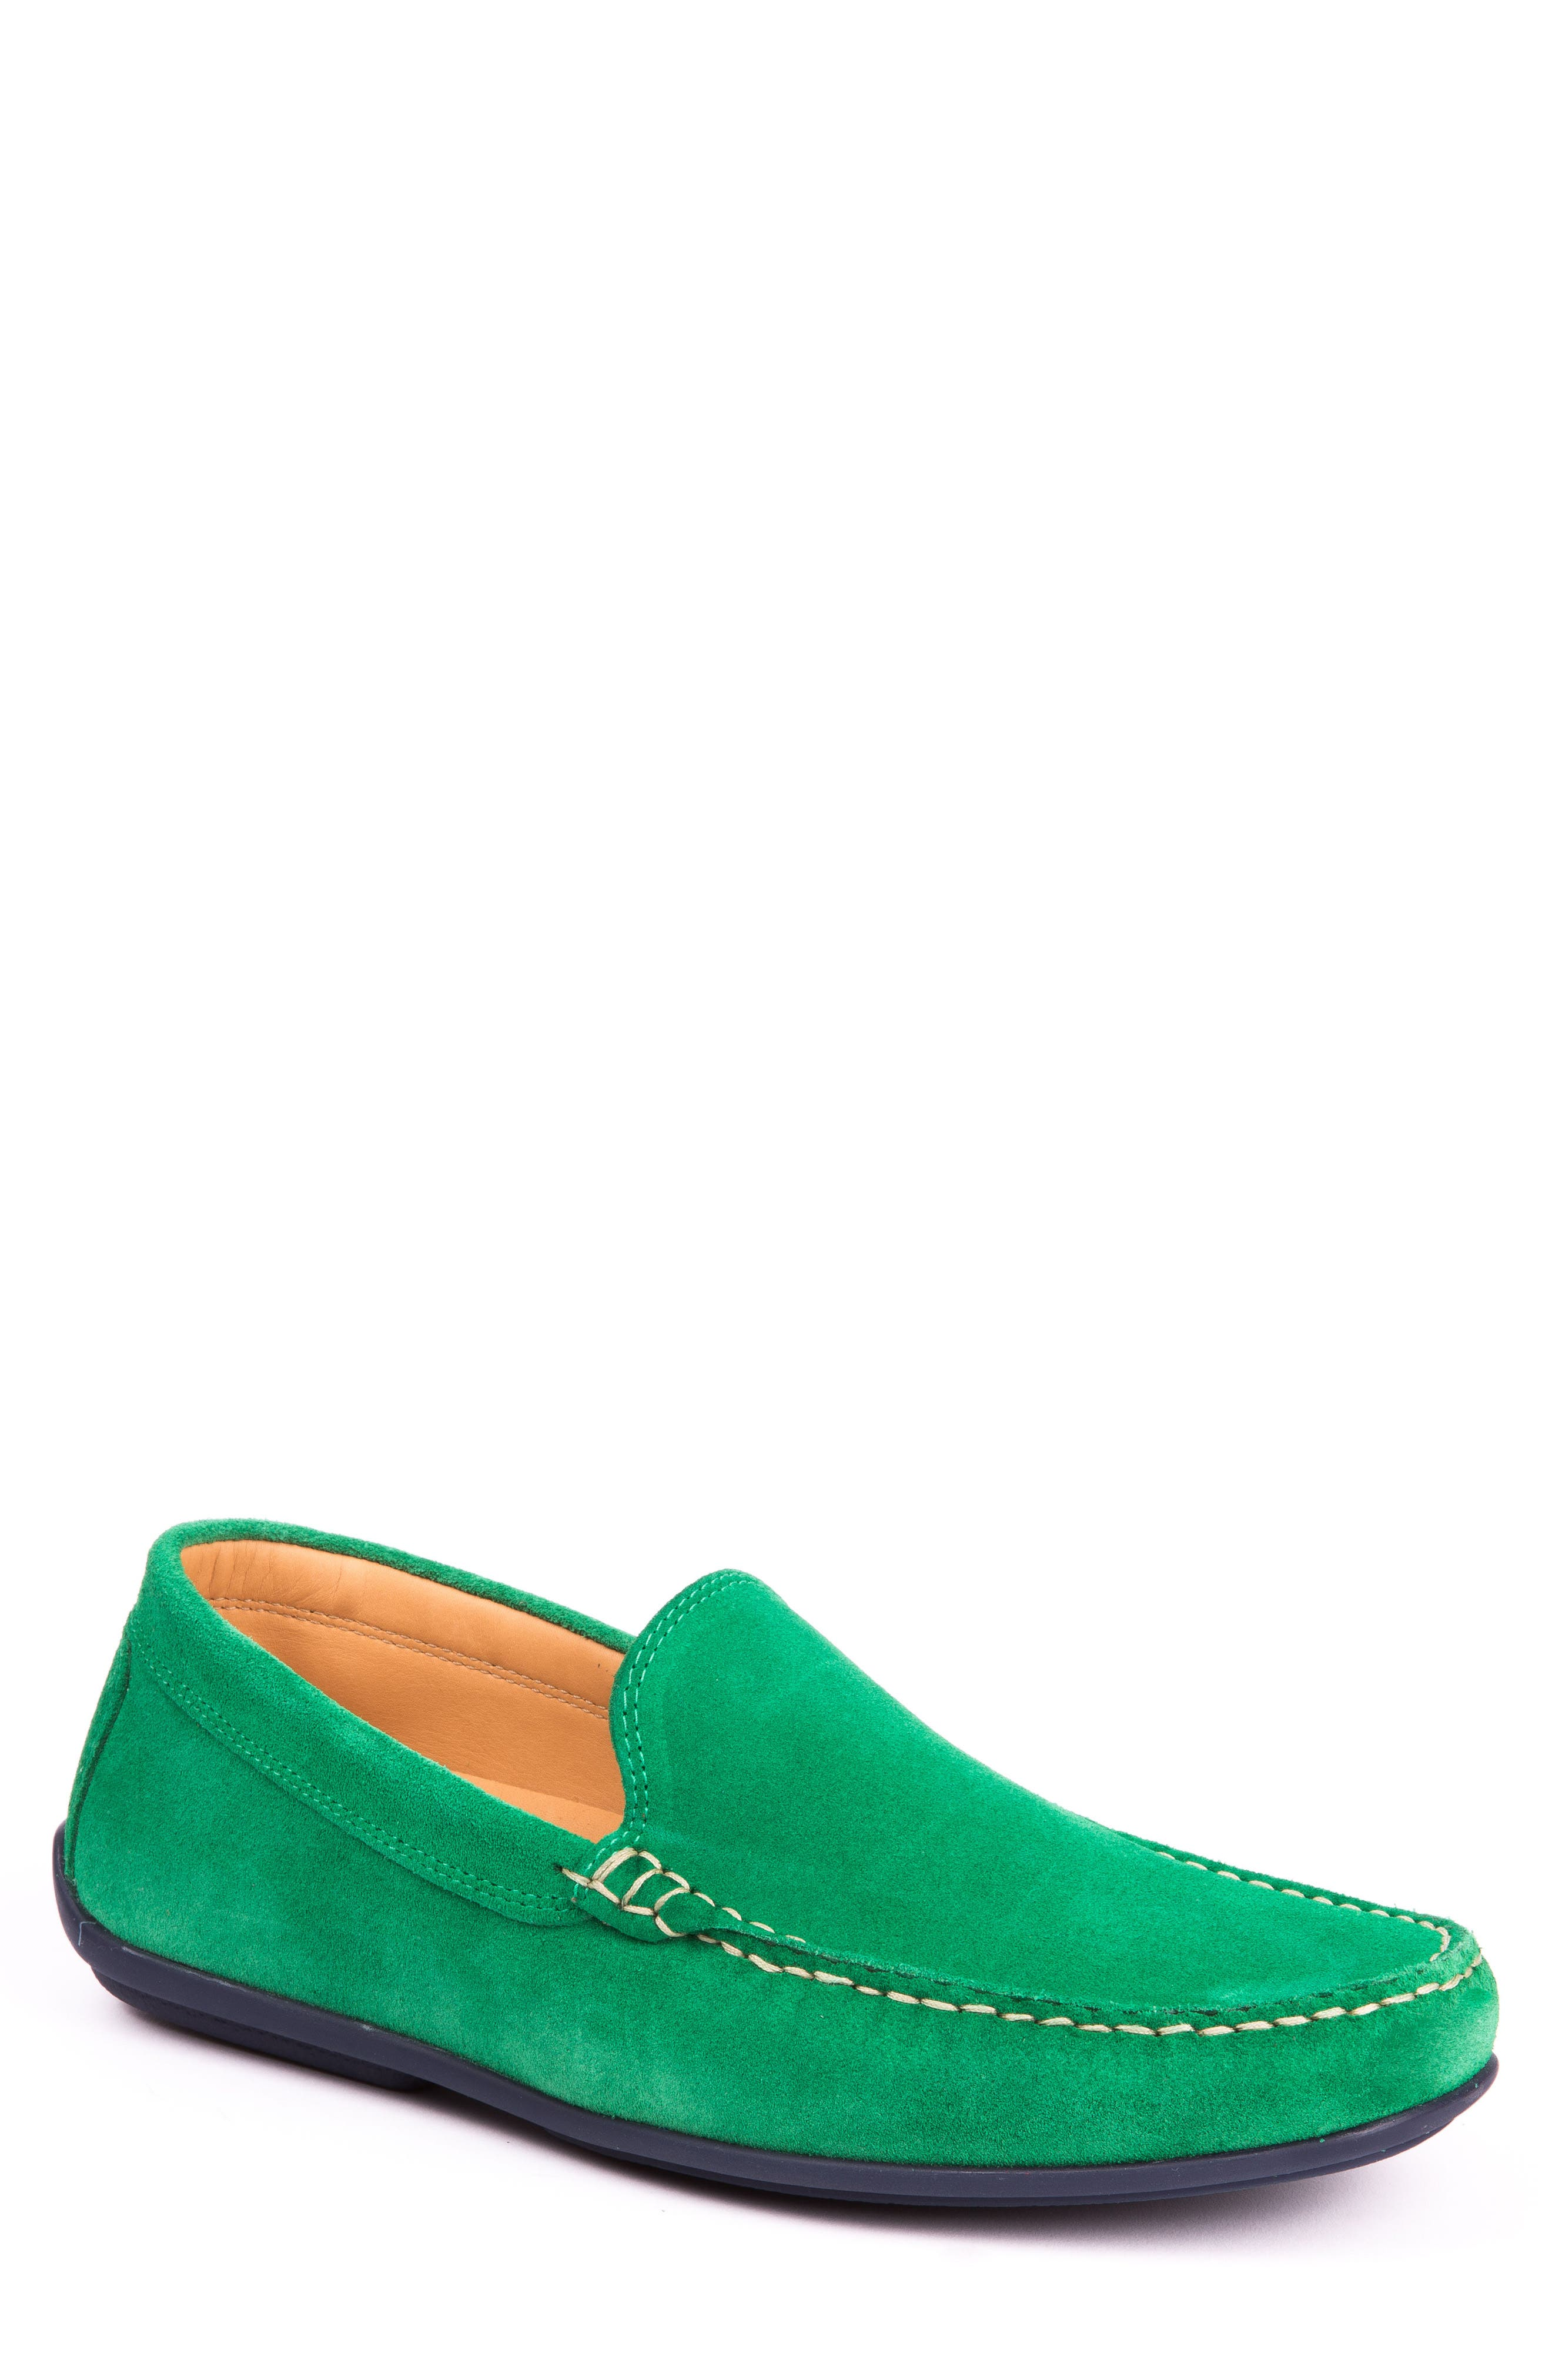 Fairways Driving Shoe,                         Main,                         color, Green Suede